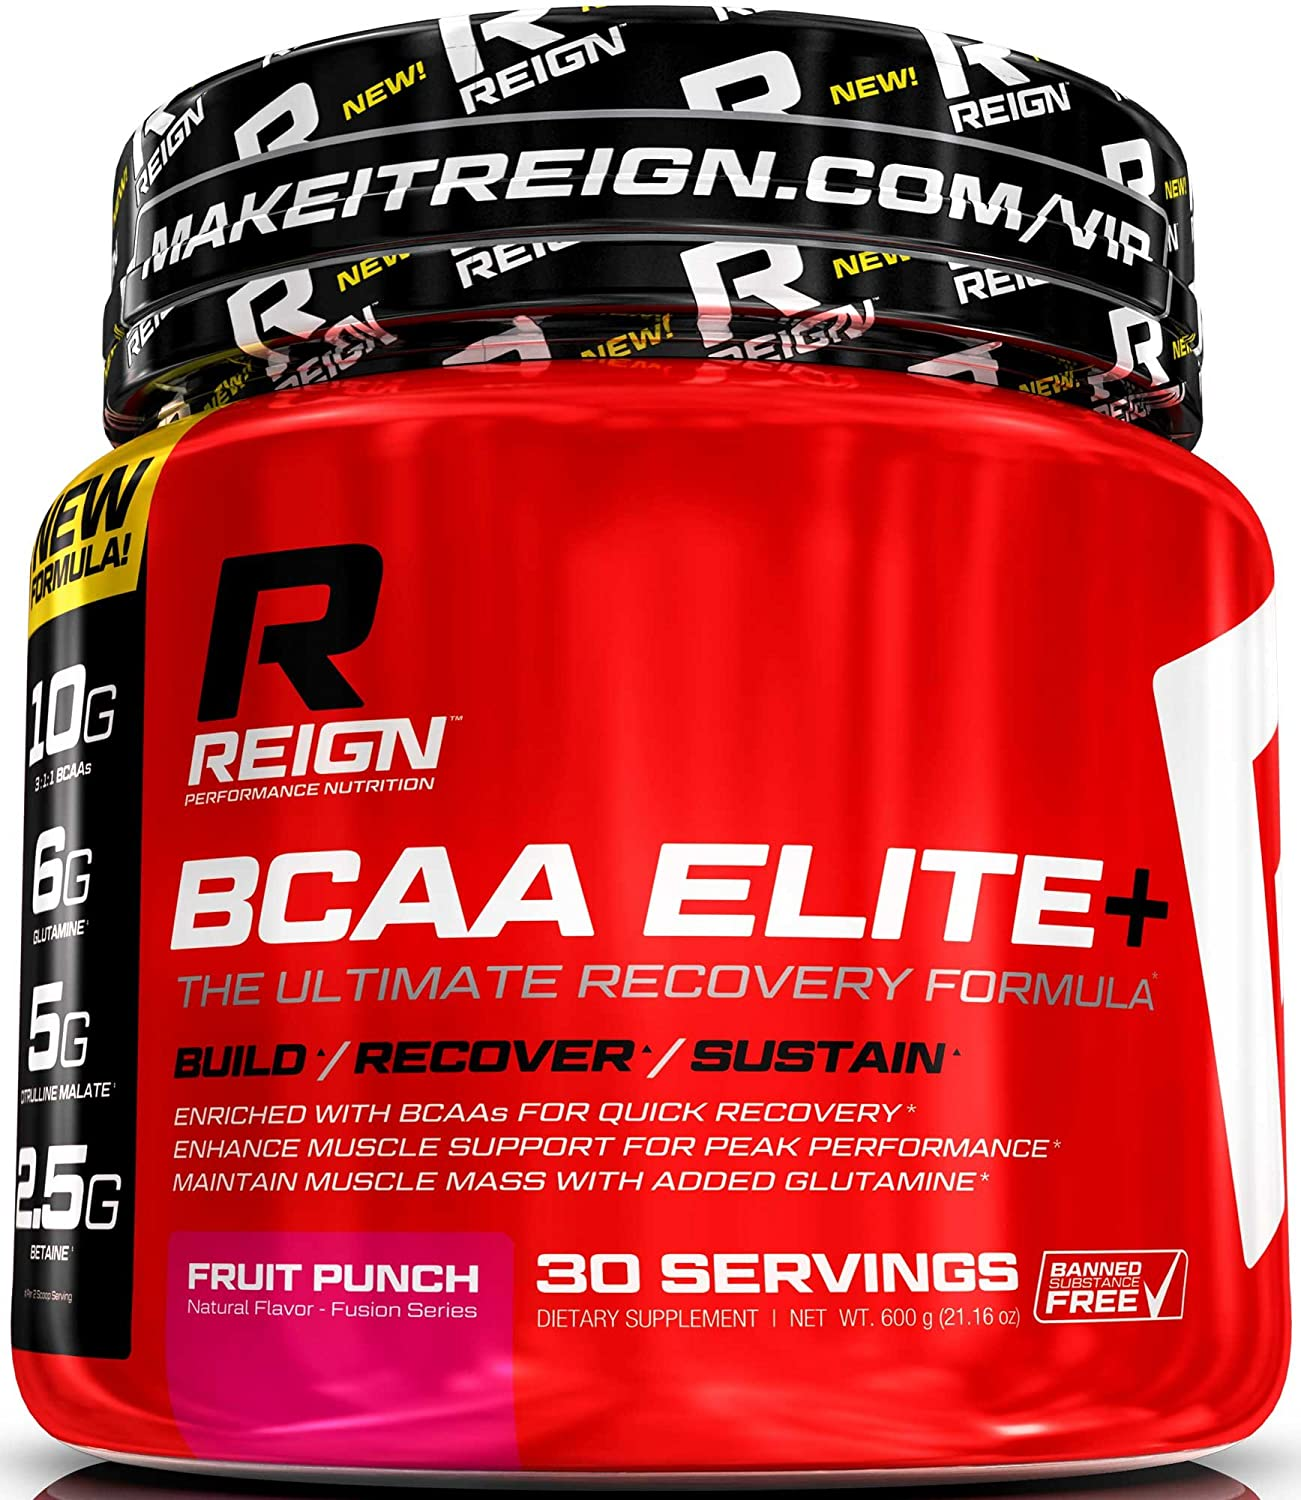 Pre order code recovery form - Amazon Com Bcaa Elite Amino Acids Post Workout Recovery Powder With Glutamine Train Harder Recover Faster Build Muscle Mass Best Bodybuilding